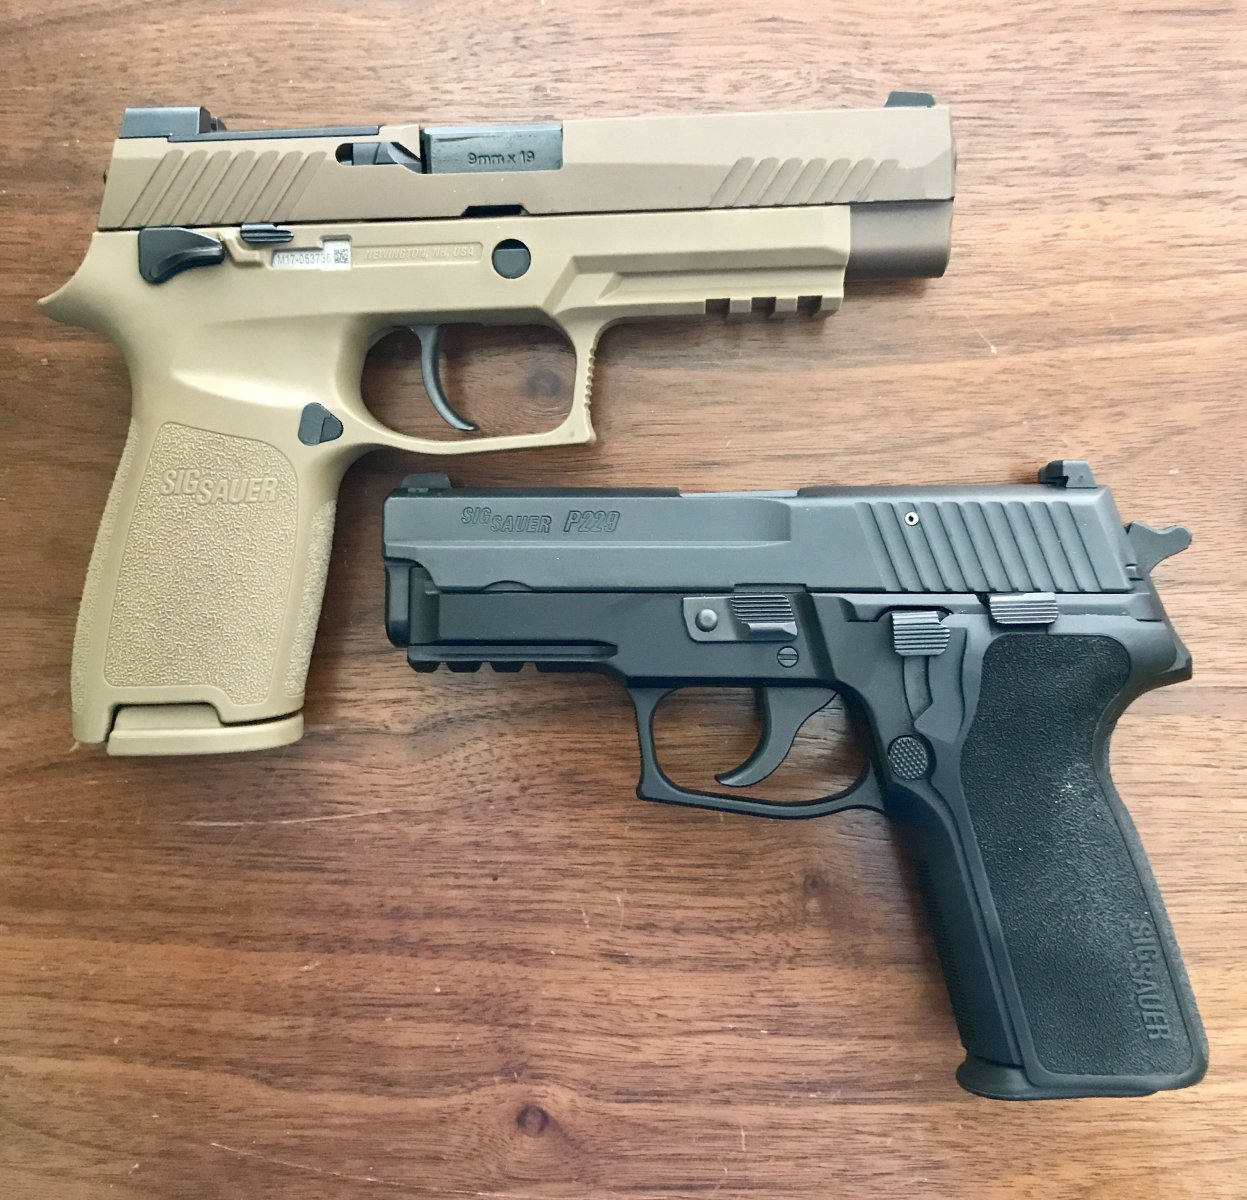 Sig M17 - $180 to the military, $1122 for you